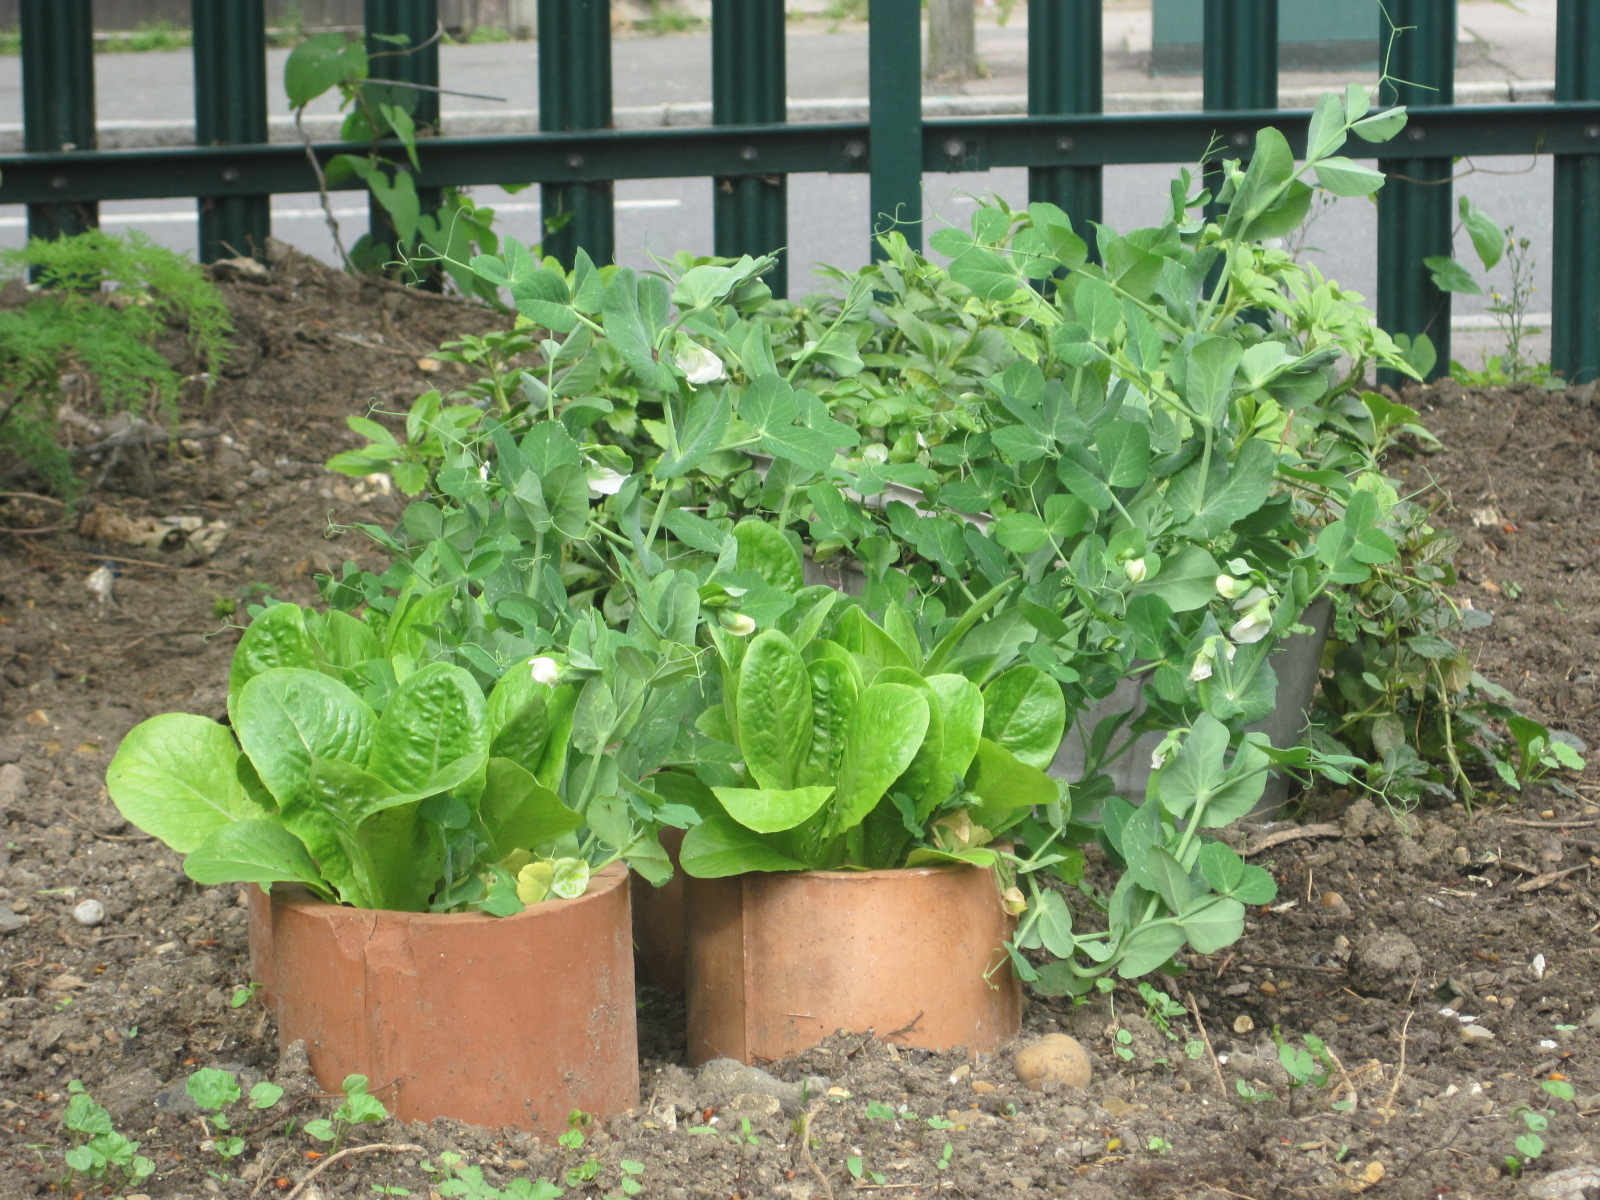 Tomato marmande agm seeds d t brown vegetable seeds - Imaginative Use Of The Terracotta Pipes And A Galvanised Bucket I Hope To Encourage The Team To Eat The Lettuces And Peas Growing Out Of The Pipes